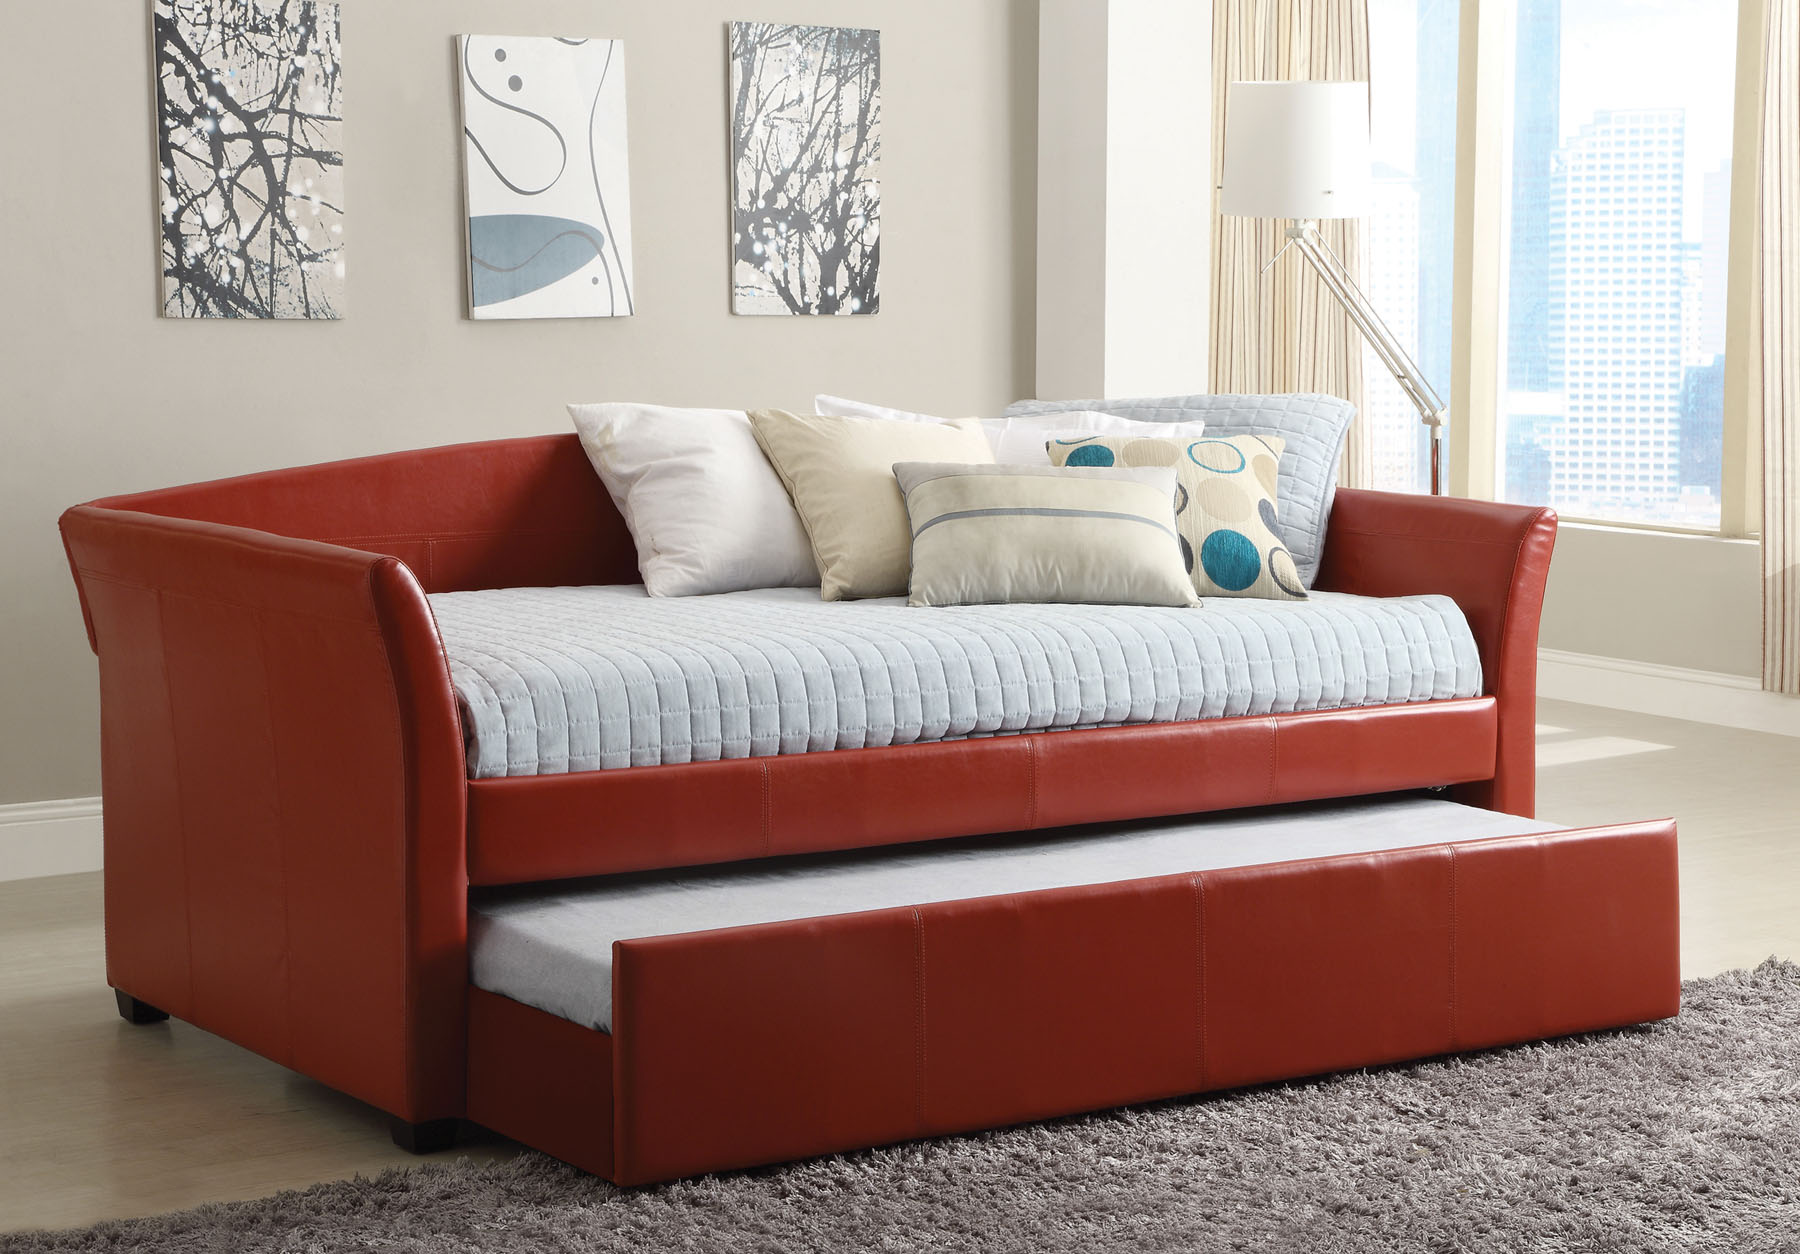 Faux Leather Daybed CM1956RD Furniture Mattress Los Angeles and